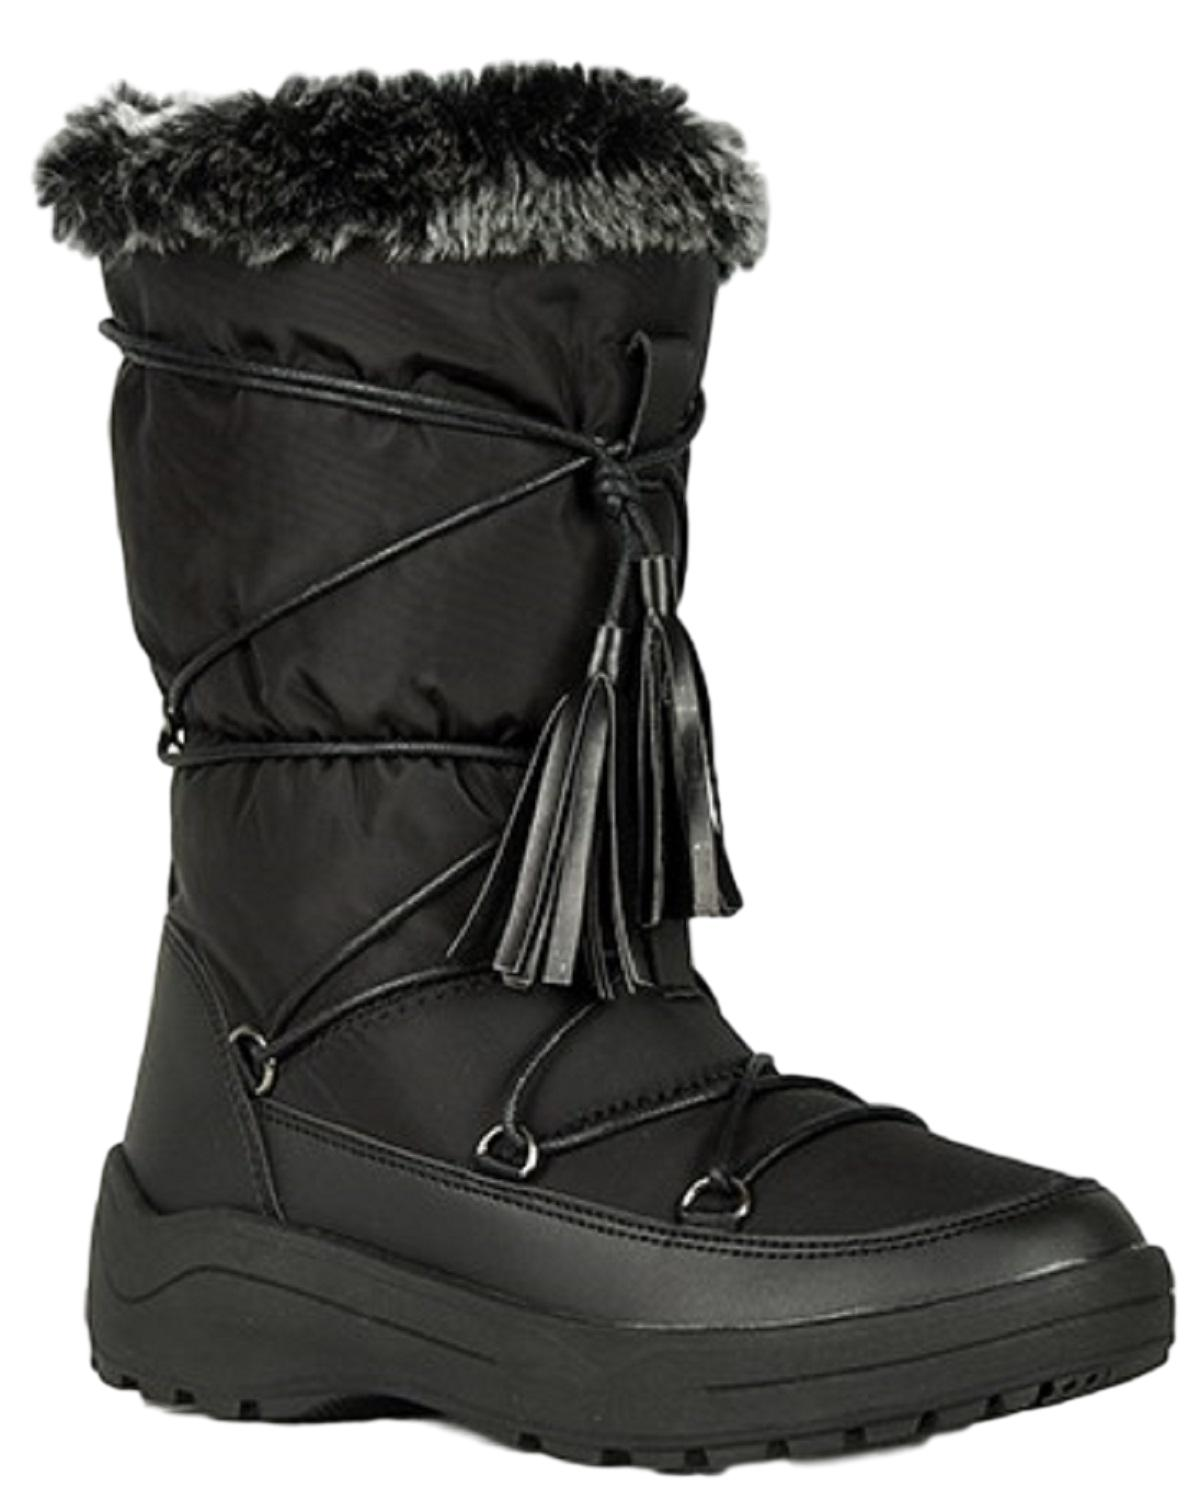 Alaska-01 Women Knee High Faux Fur Winter Snow Moon Boots Black